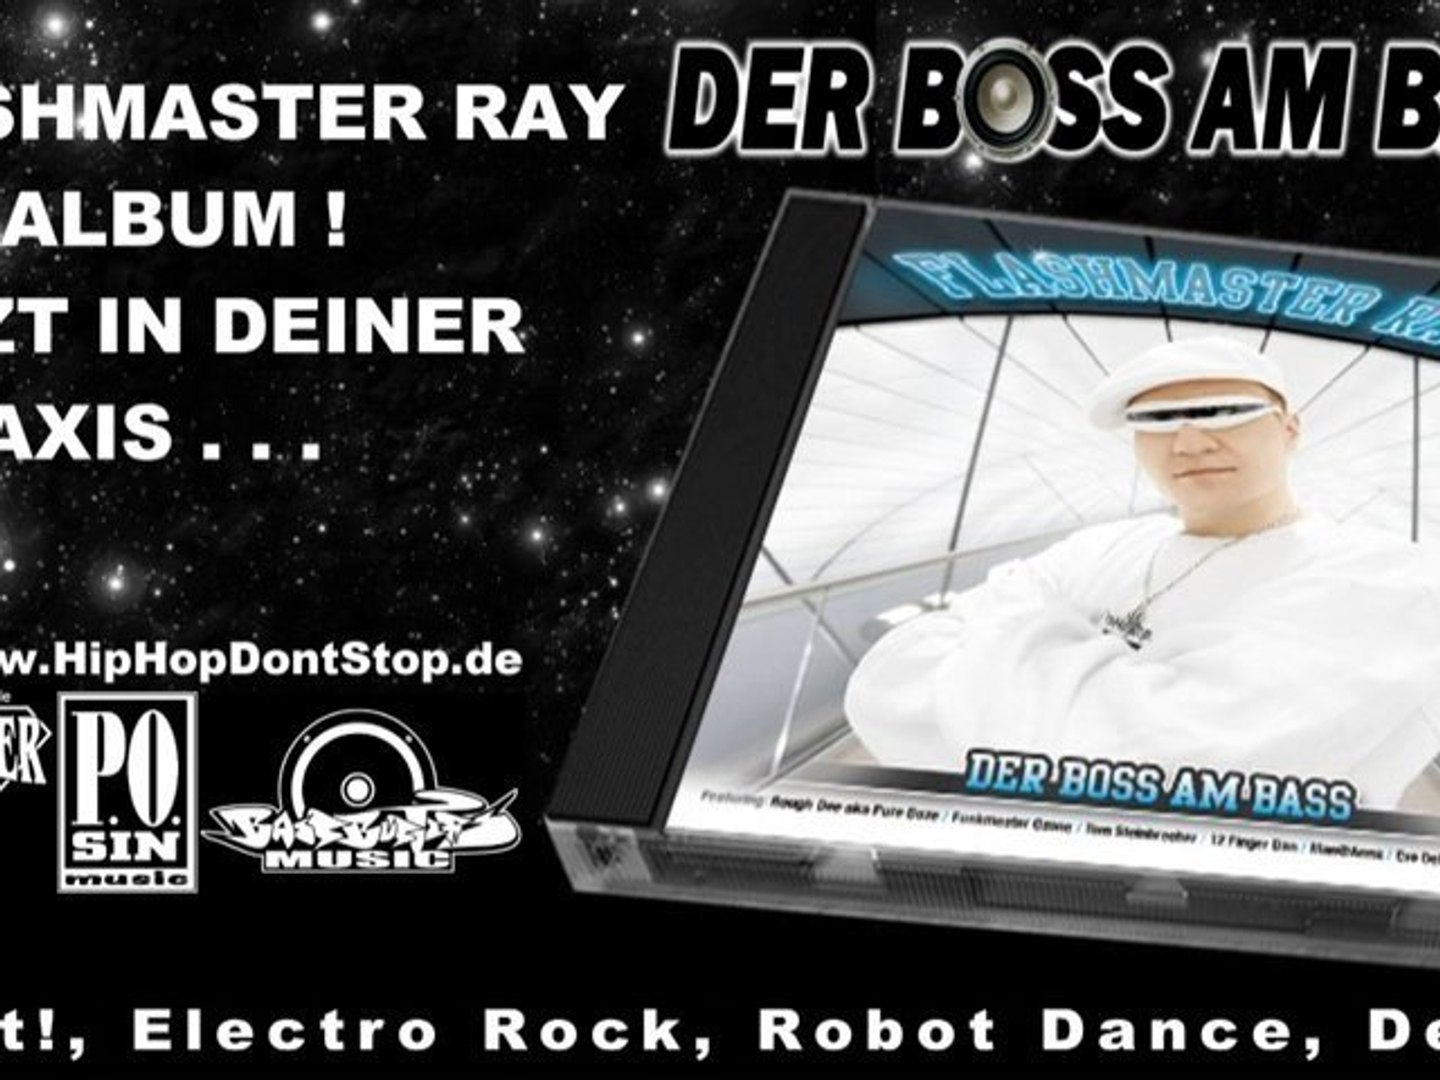 Flashmaster Ray -Der Boss am Bass- Hip Hop ALBUM (Official Video Snippet)